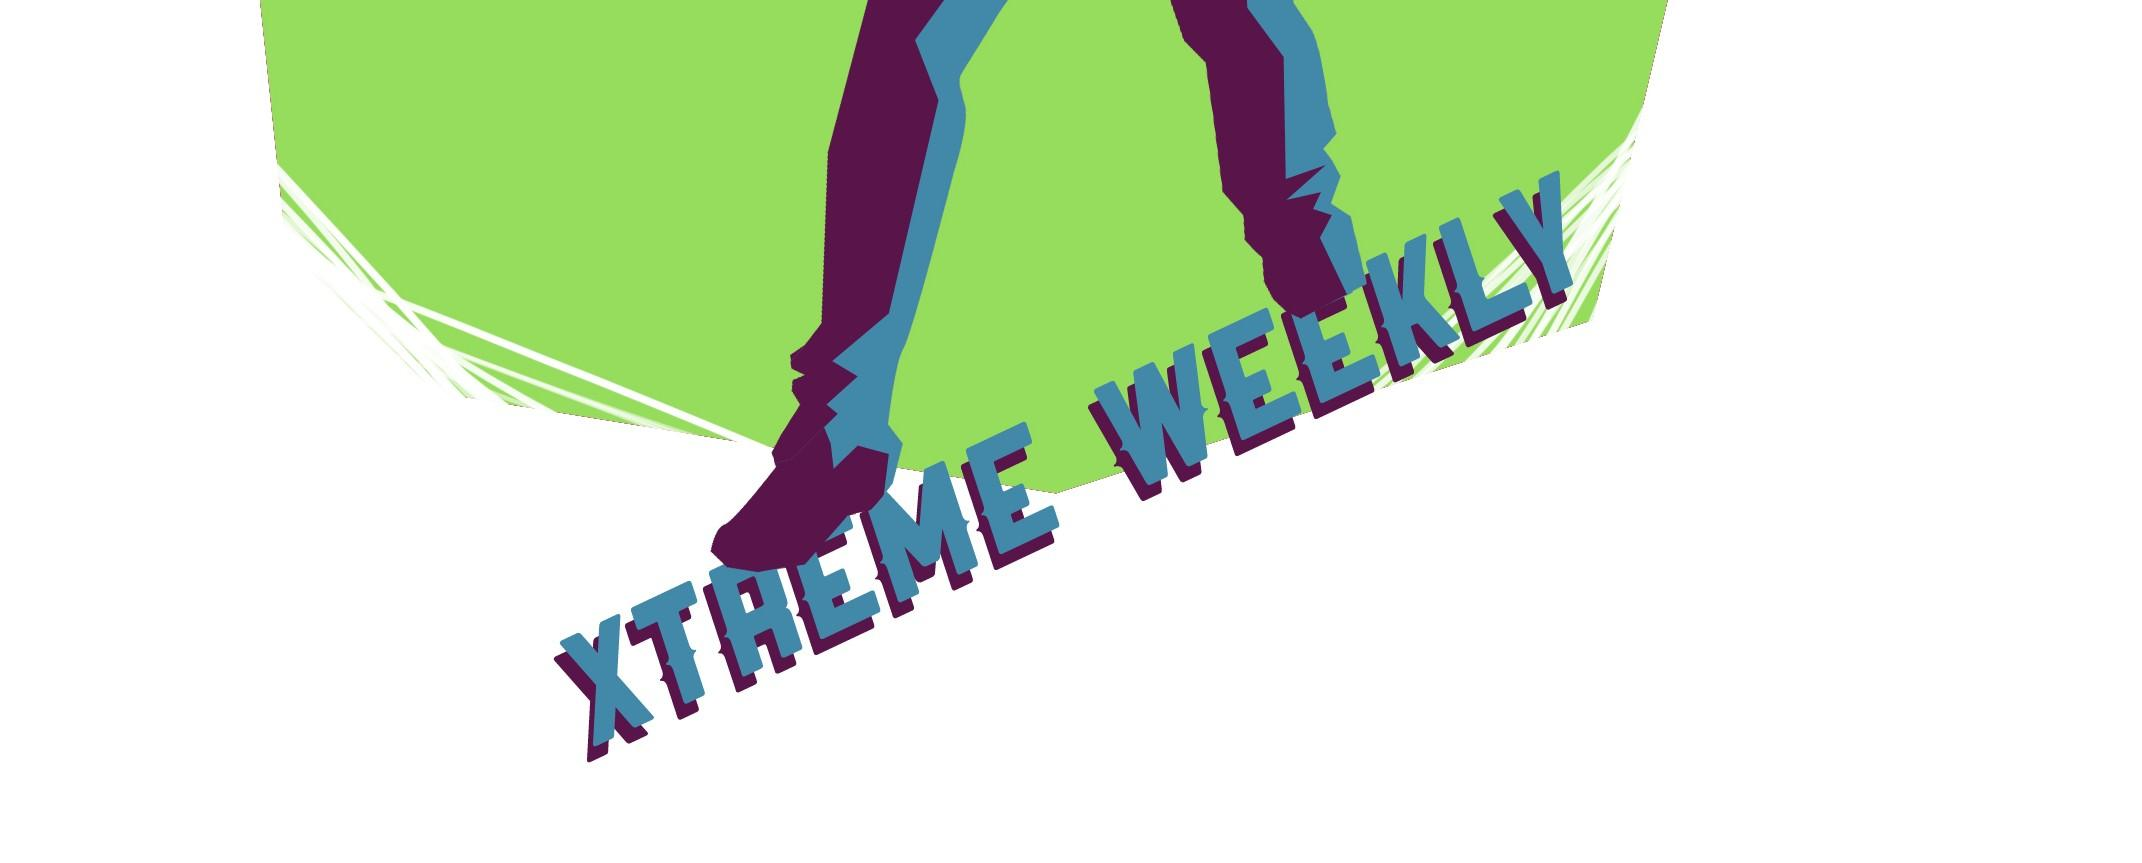 Xtreme weekly Issue 7: Who is number 1?